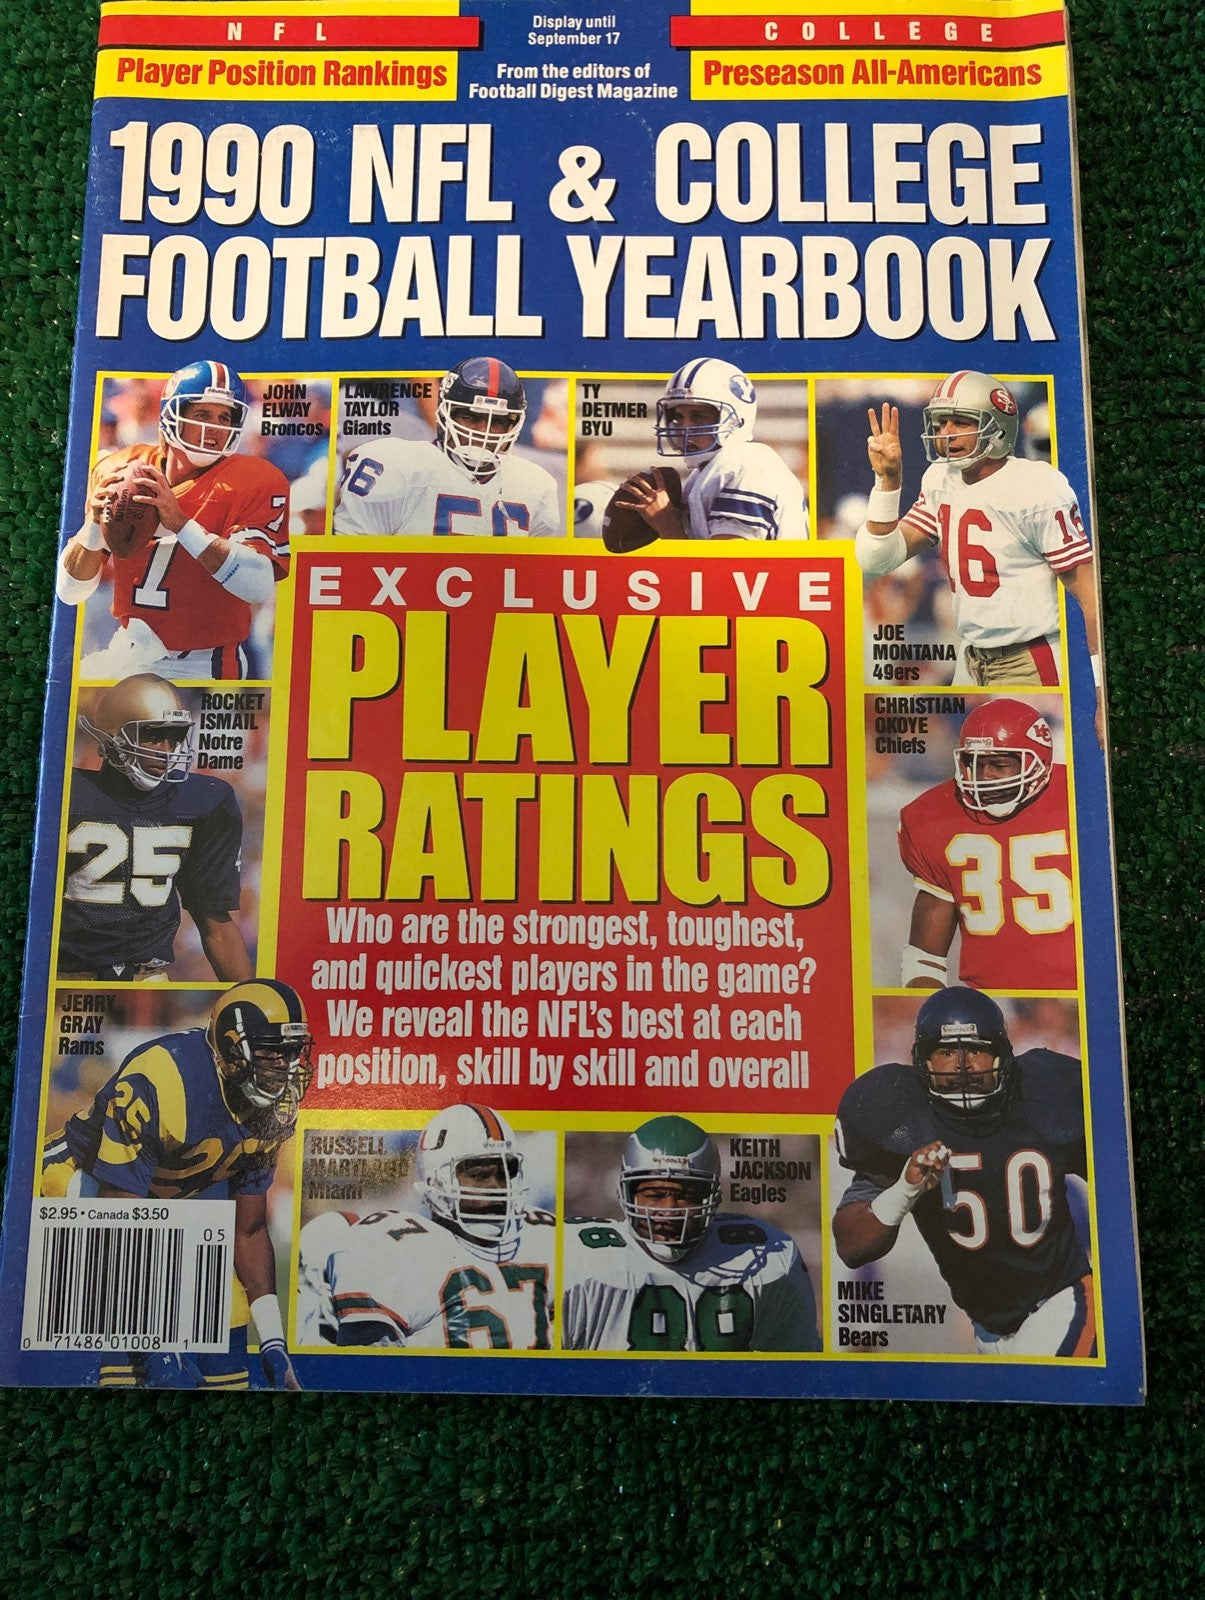 1990 NFL & College Football Yearbook